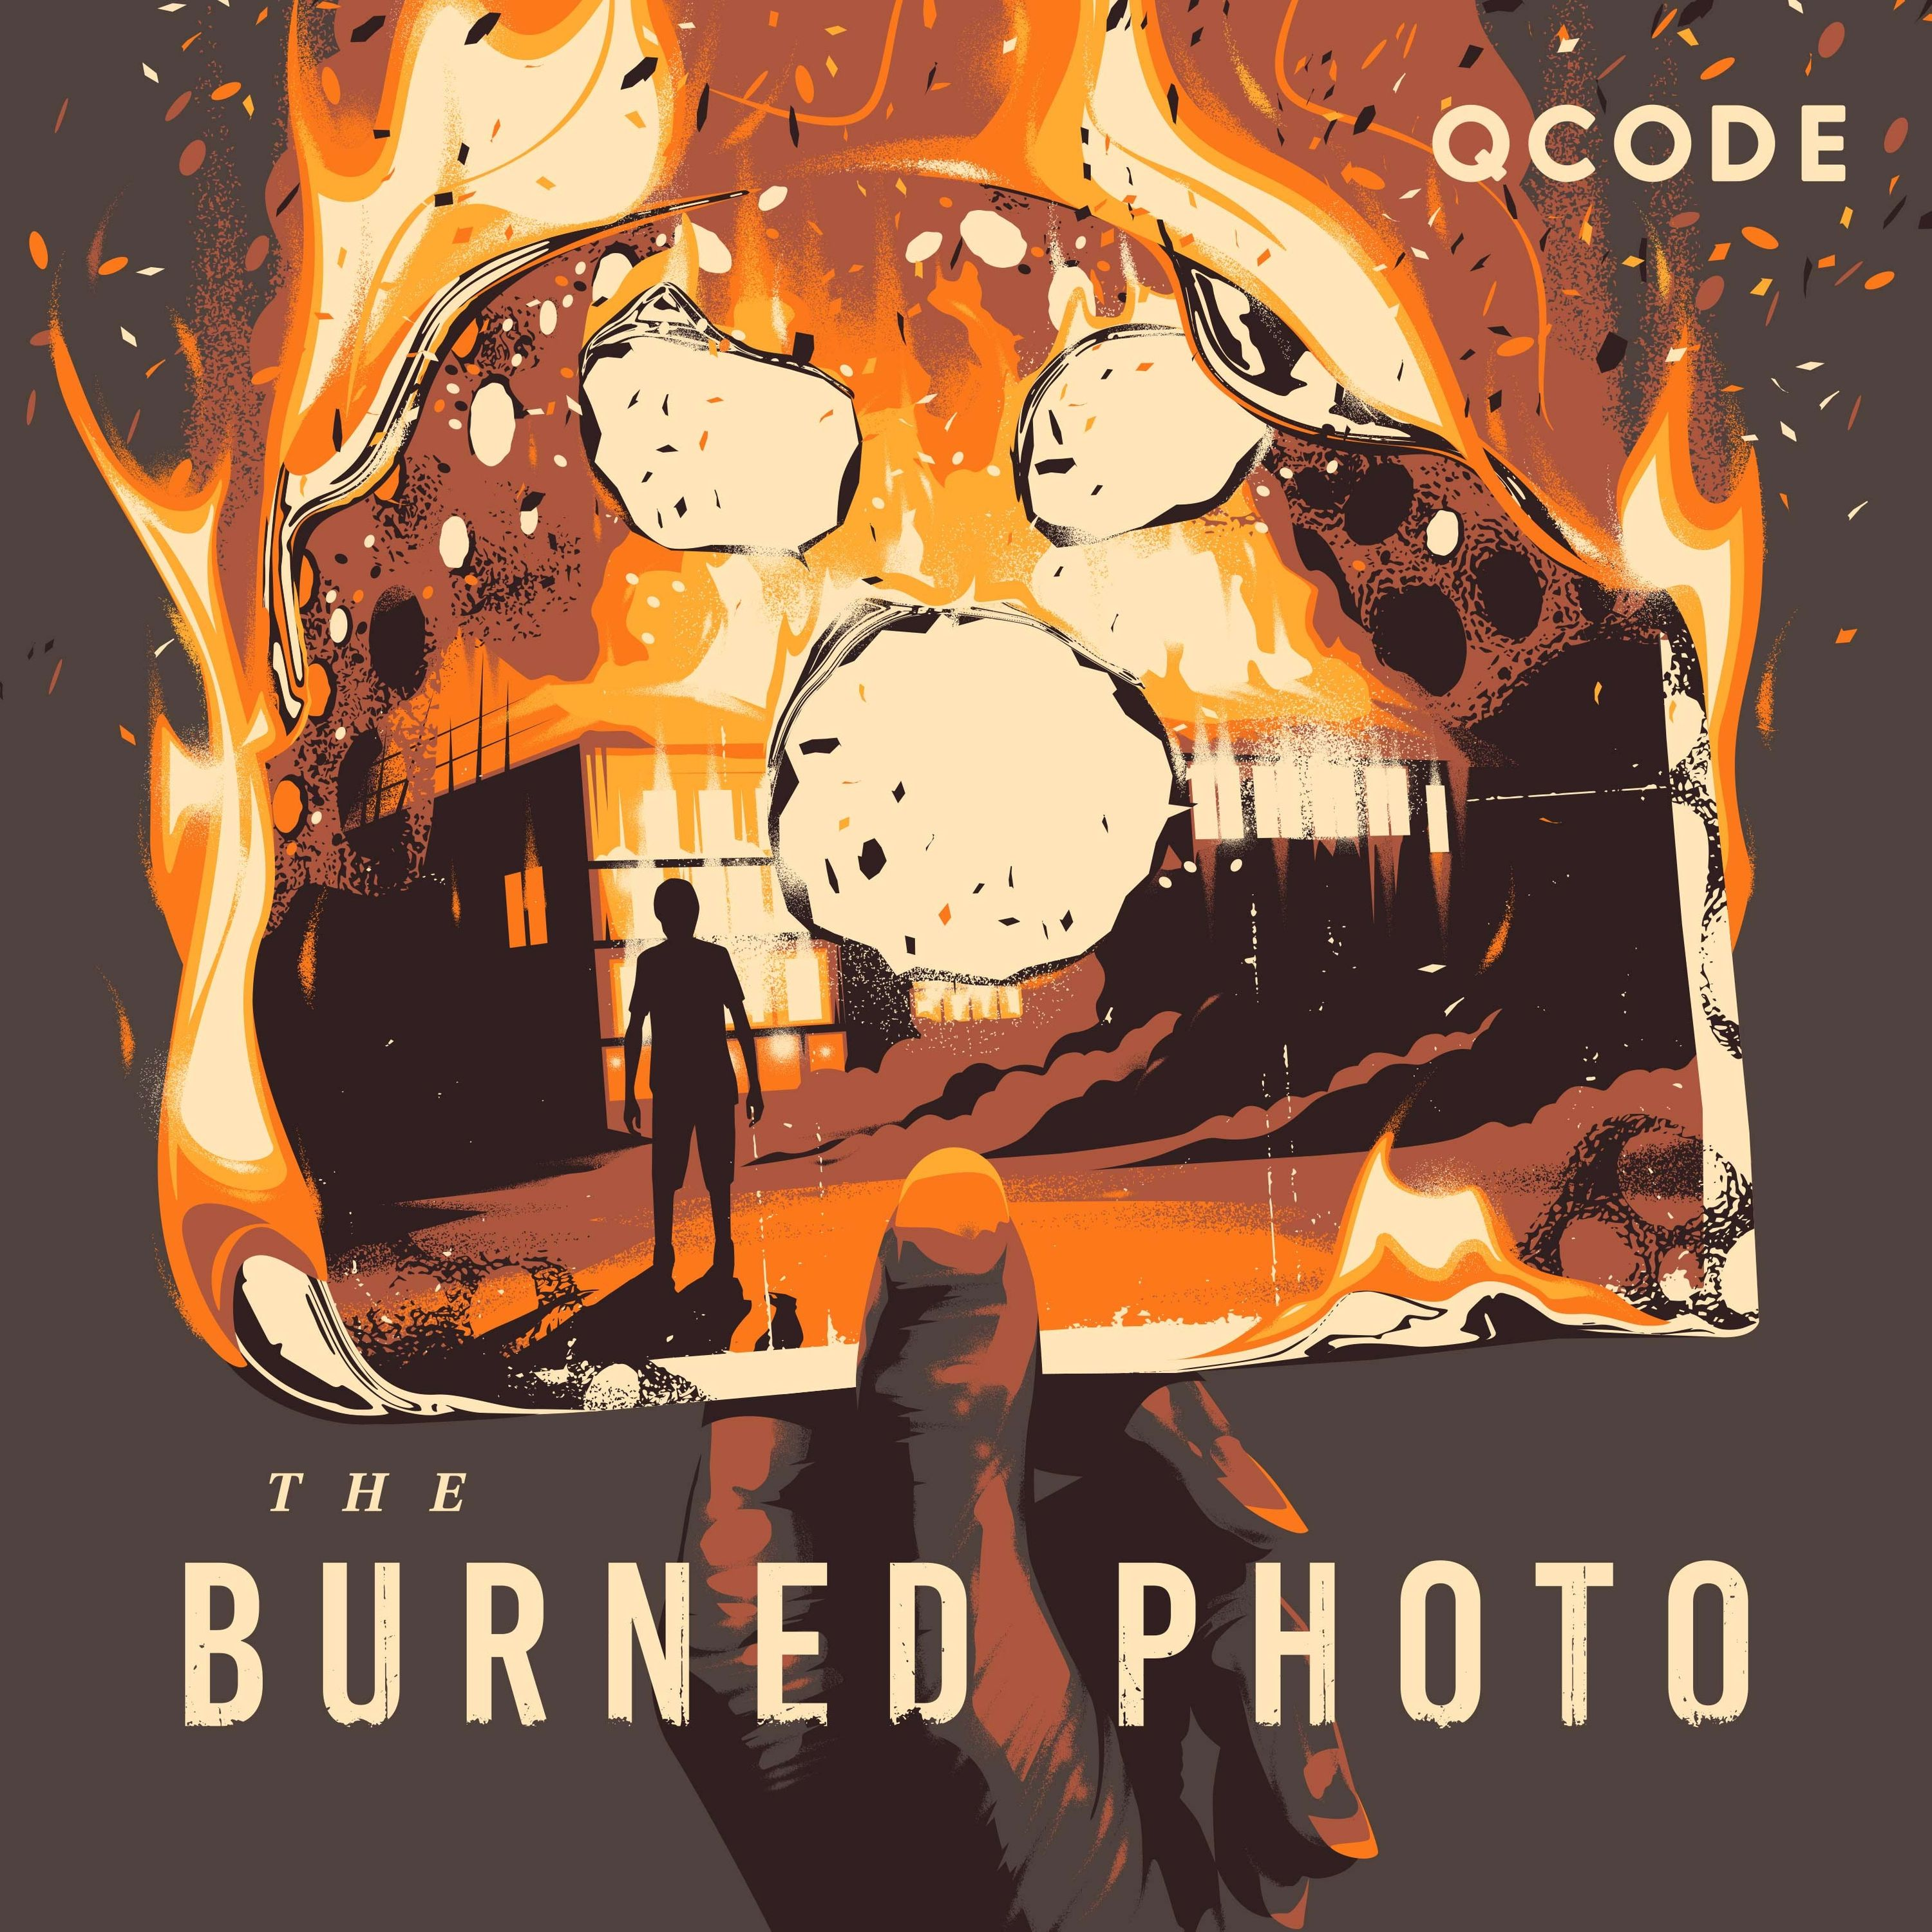 Introducing: The Burned Photo